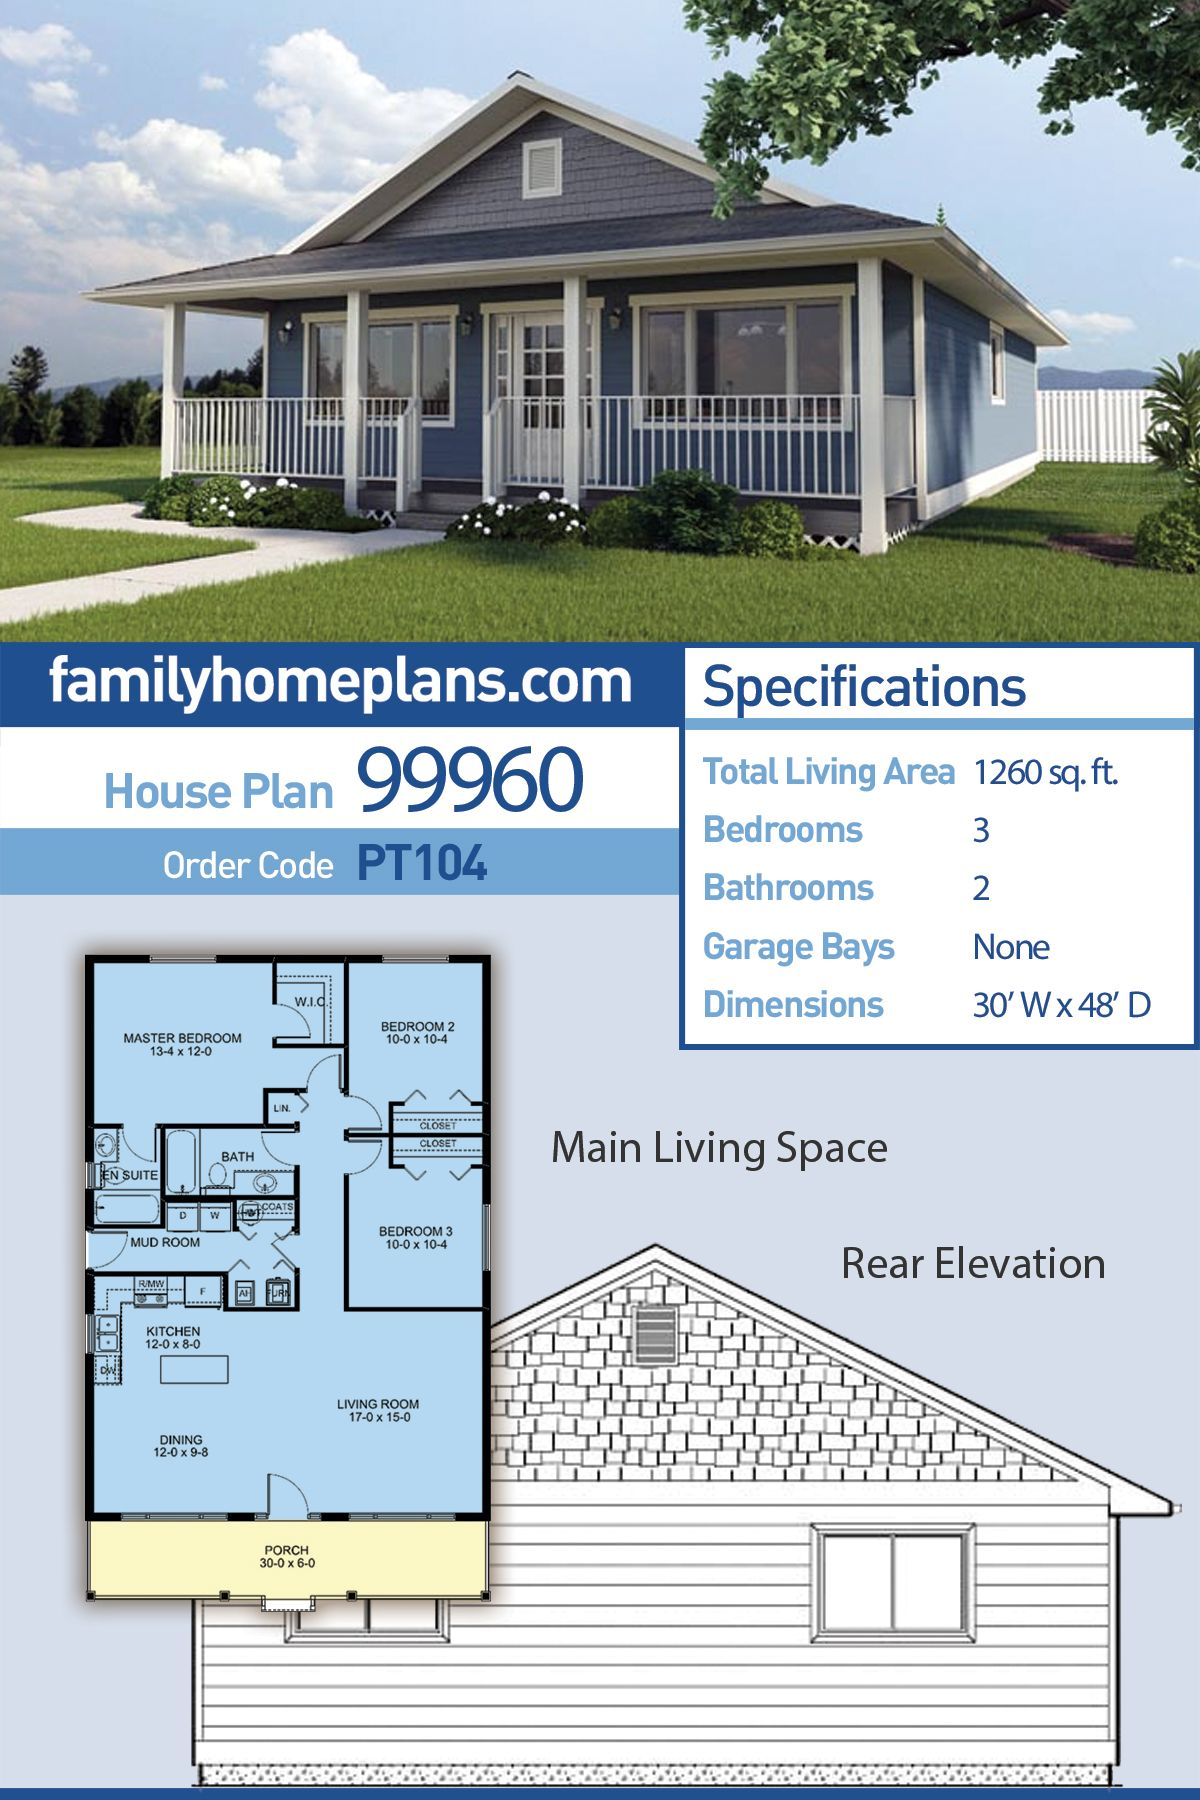 Ranch Style House Plan 99960 with 3 Bed, 2 Bath | Family ... on bathroom remodeling from 1980s, bathroom modern country designs, bathroom shower ideas, bathroom remodeling ideas for ranch style home,